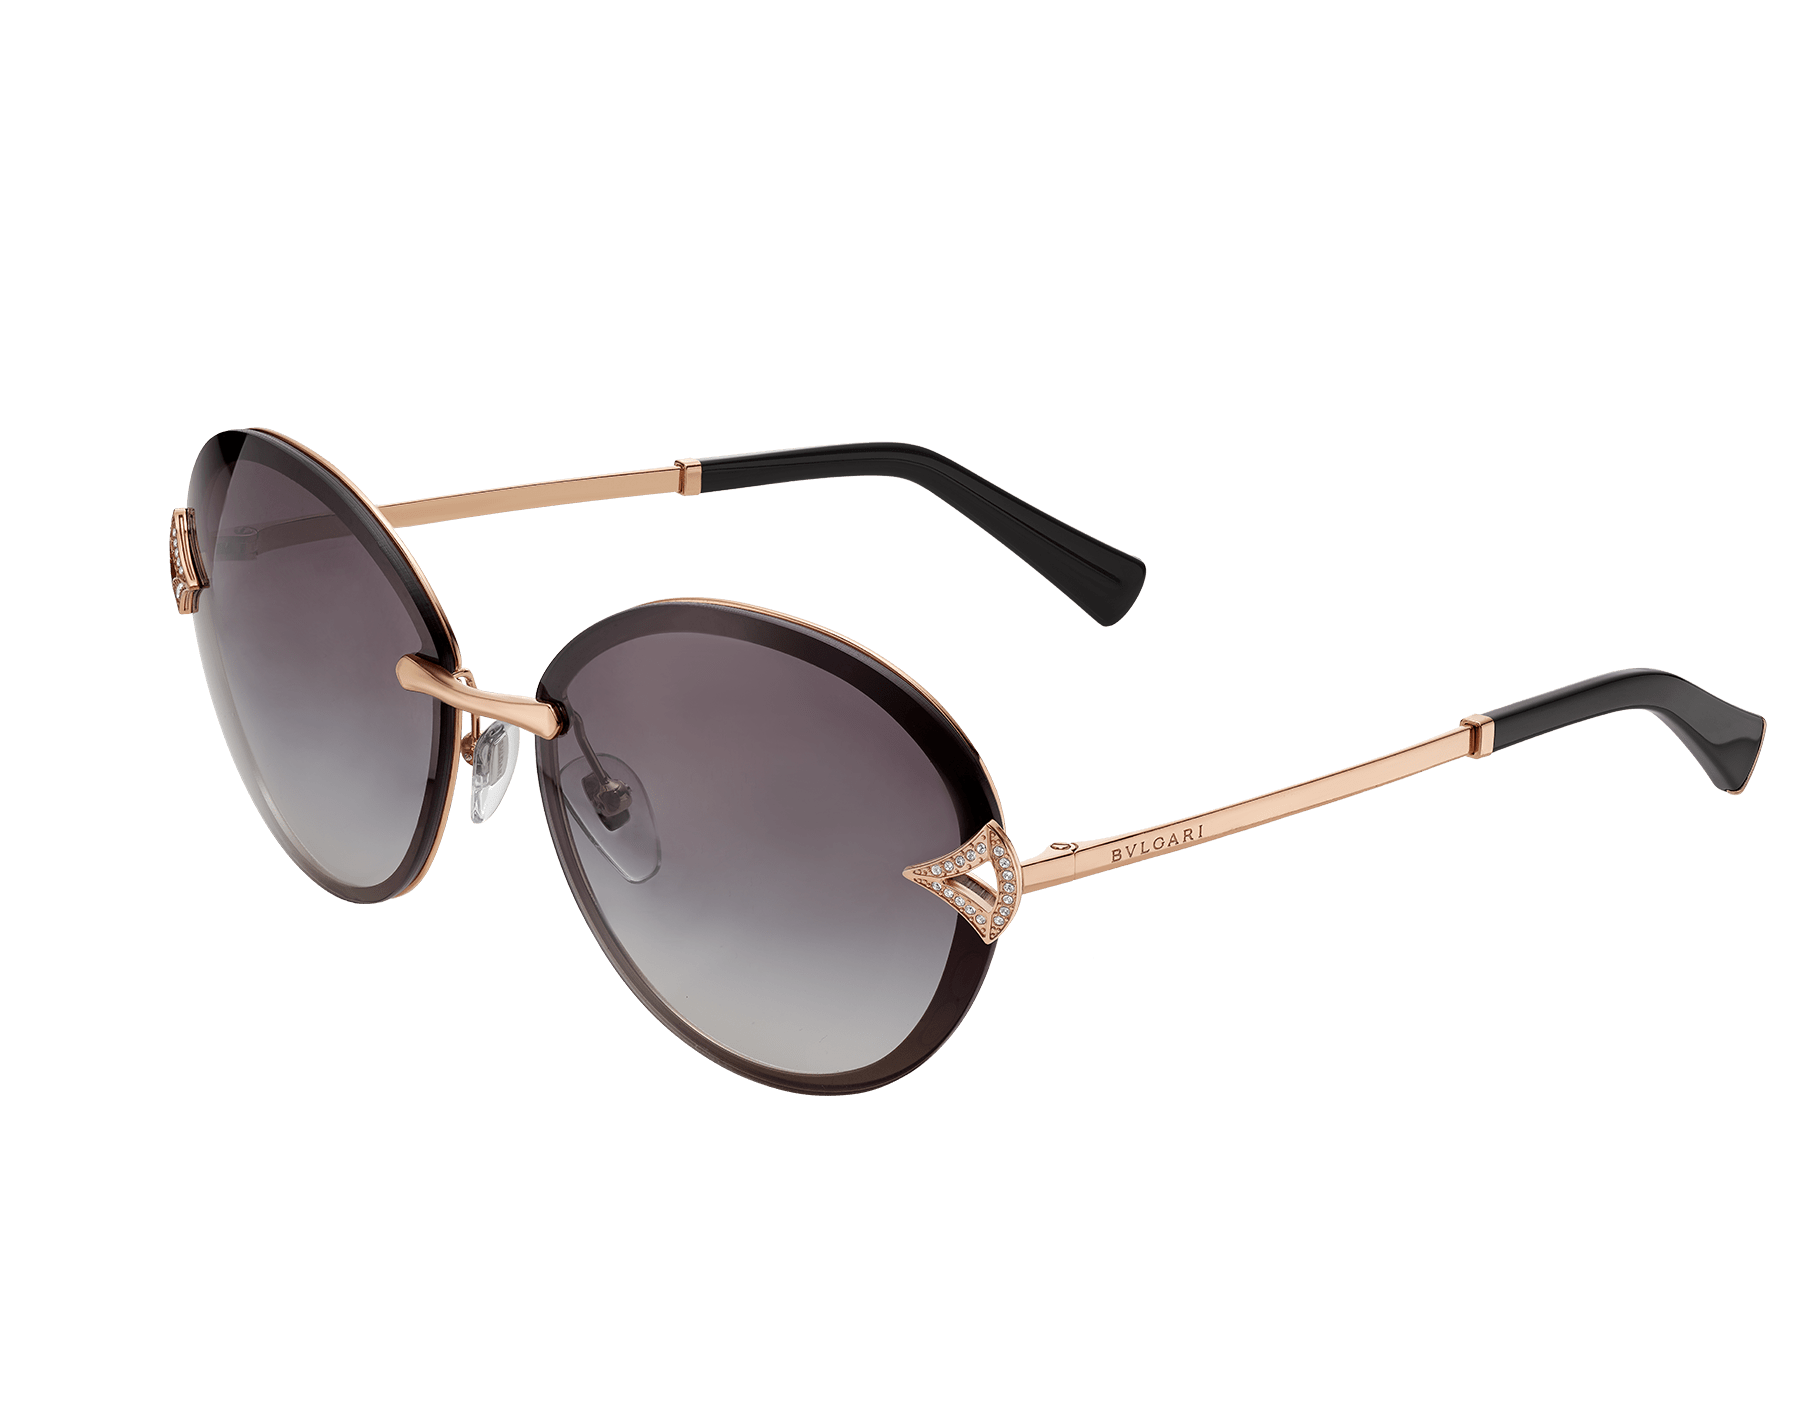 DIVAS' DREAM oval metal sunglasses. 903393 image 1